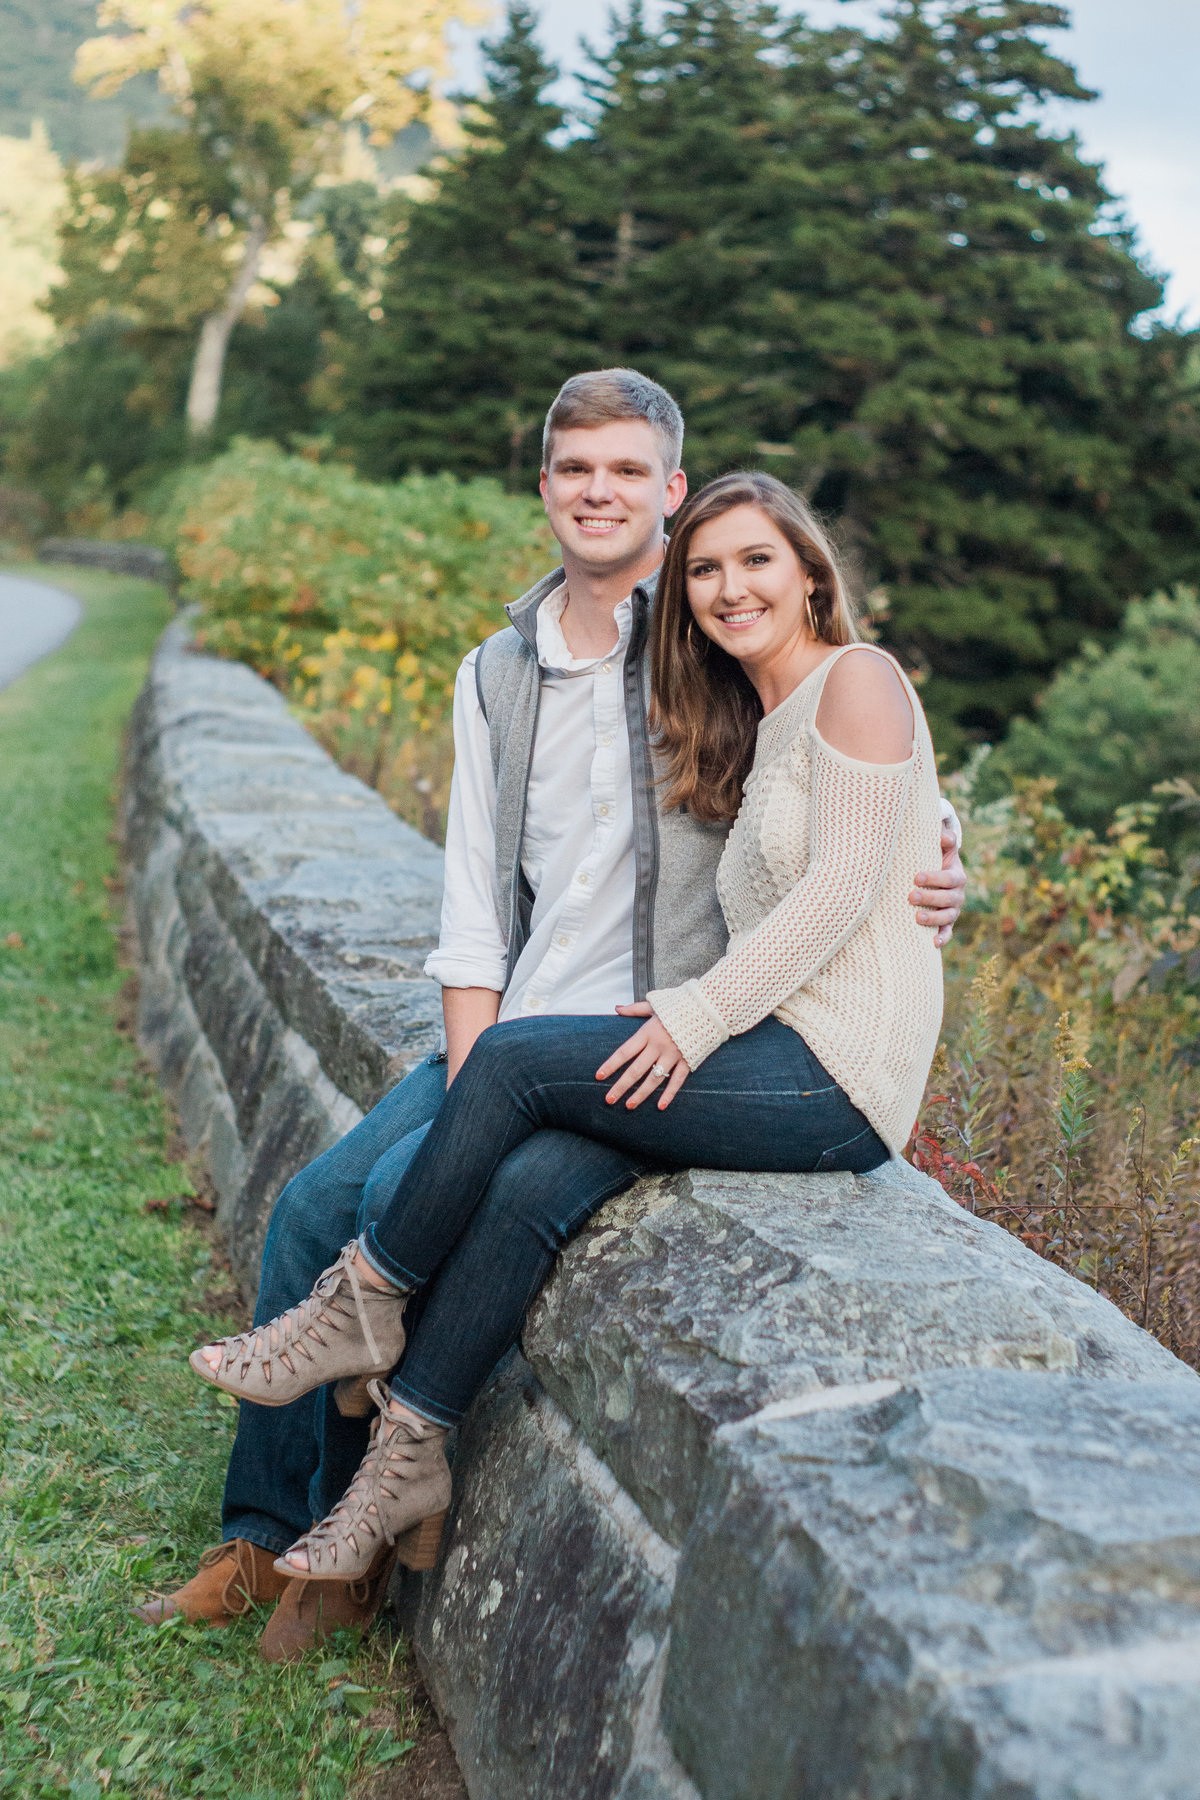 Adventurous Blue Ridge Parkway engagement session photographed at Rough Ridge by Boone Engagement Photographer Wayfaring Wanderer.